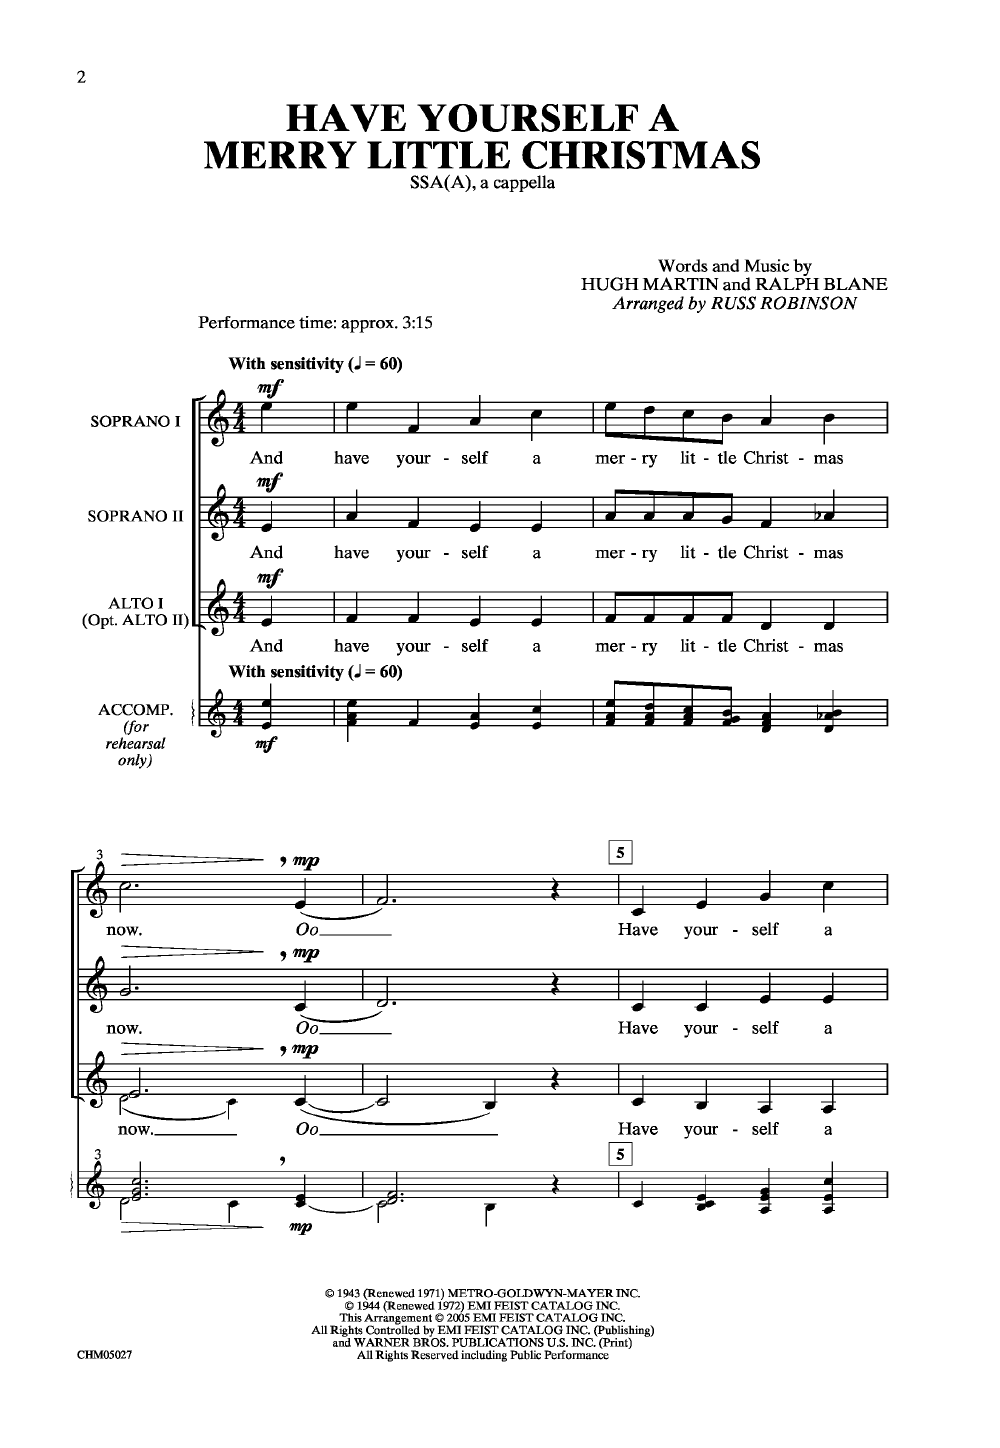 Have Yourself a Merry Little Christmas (SSAA | J.W. Pepper Sheet Music